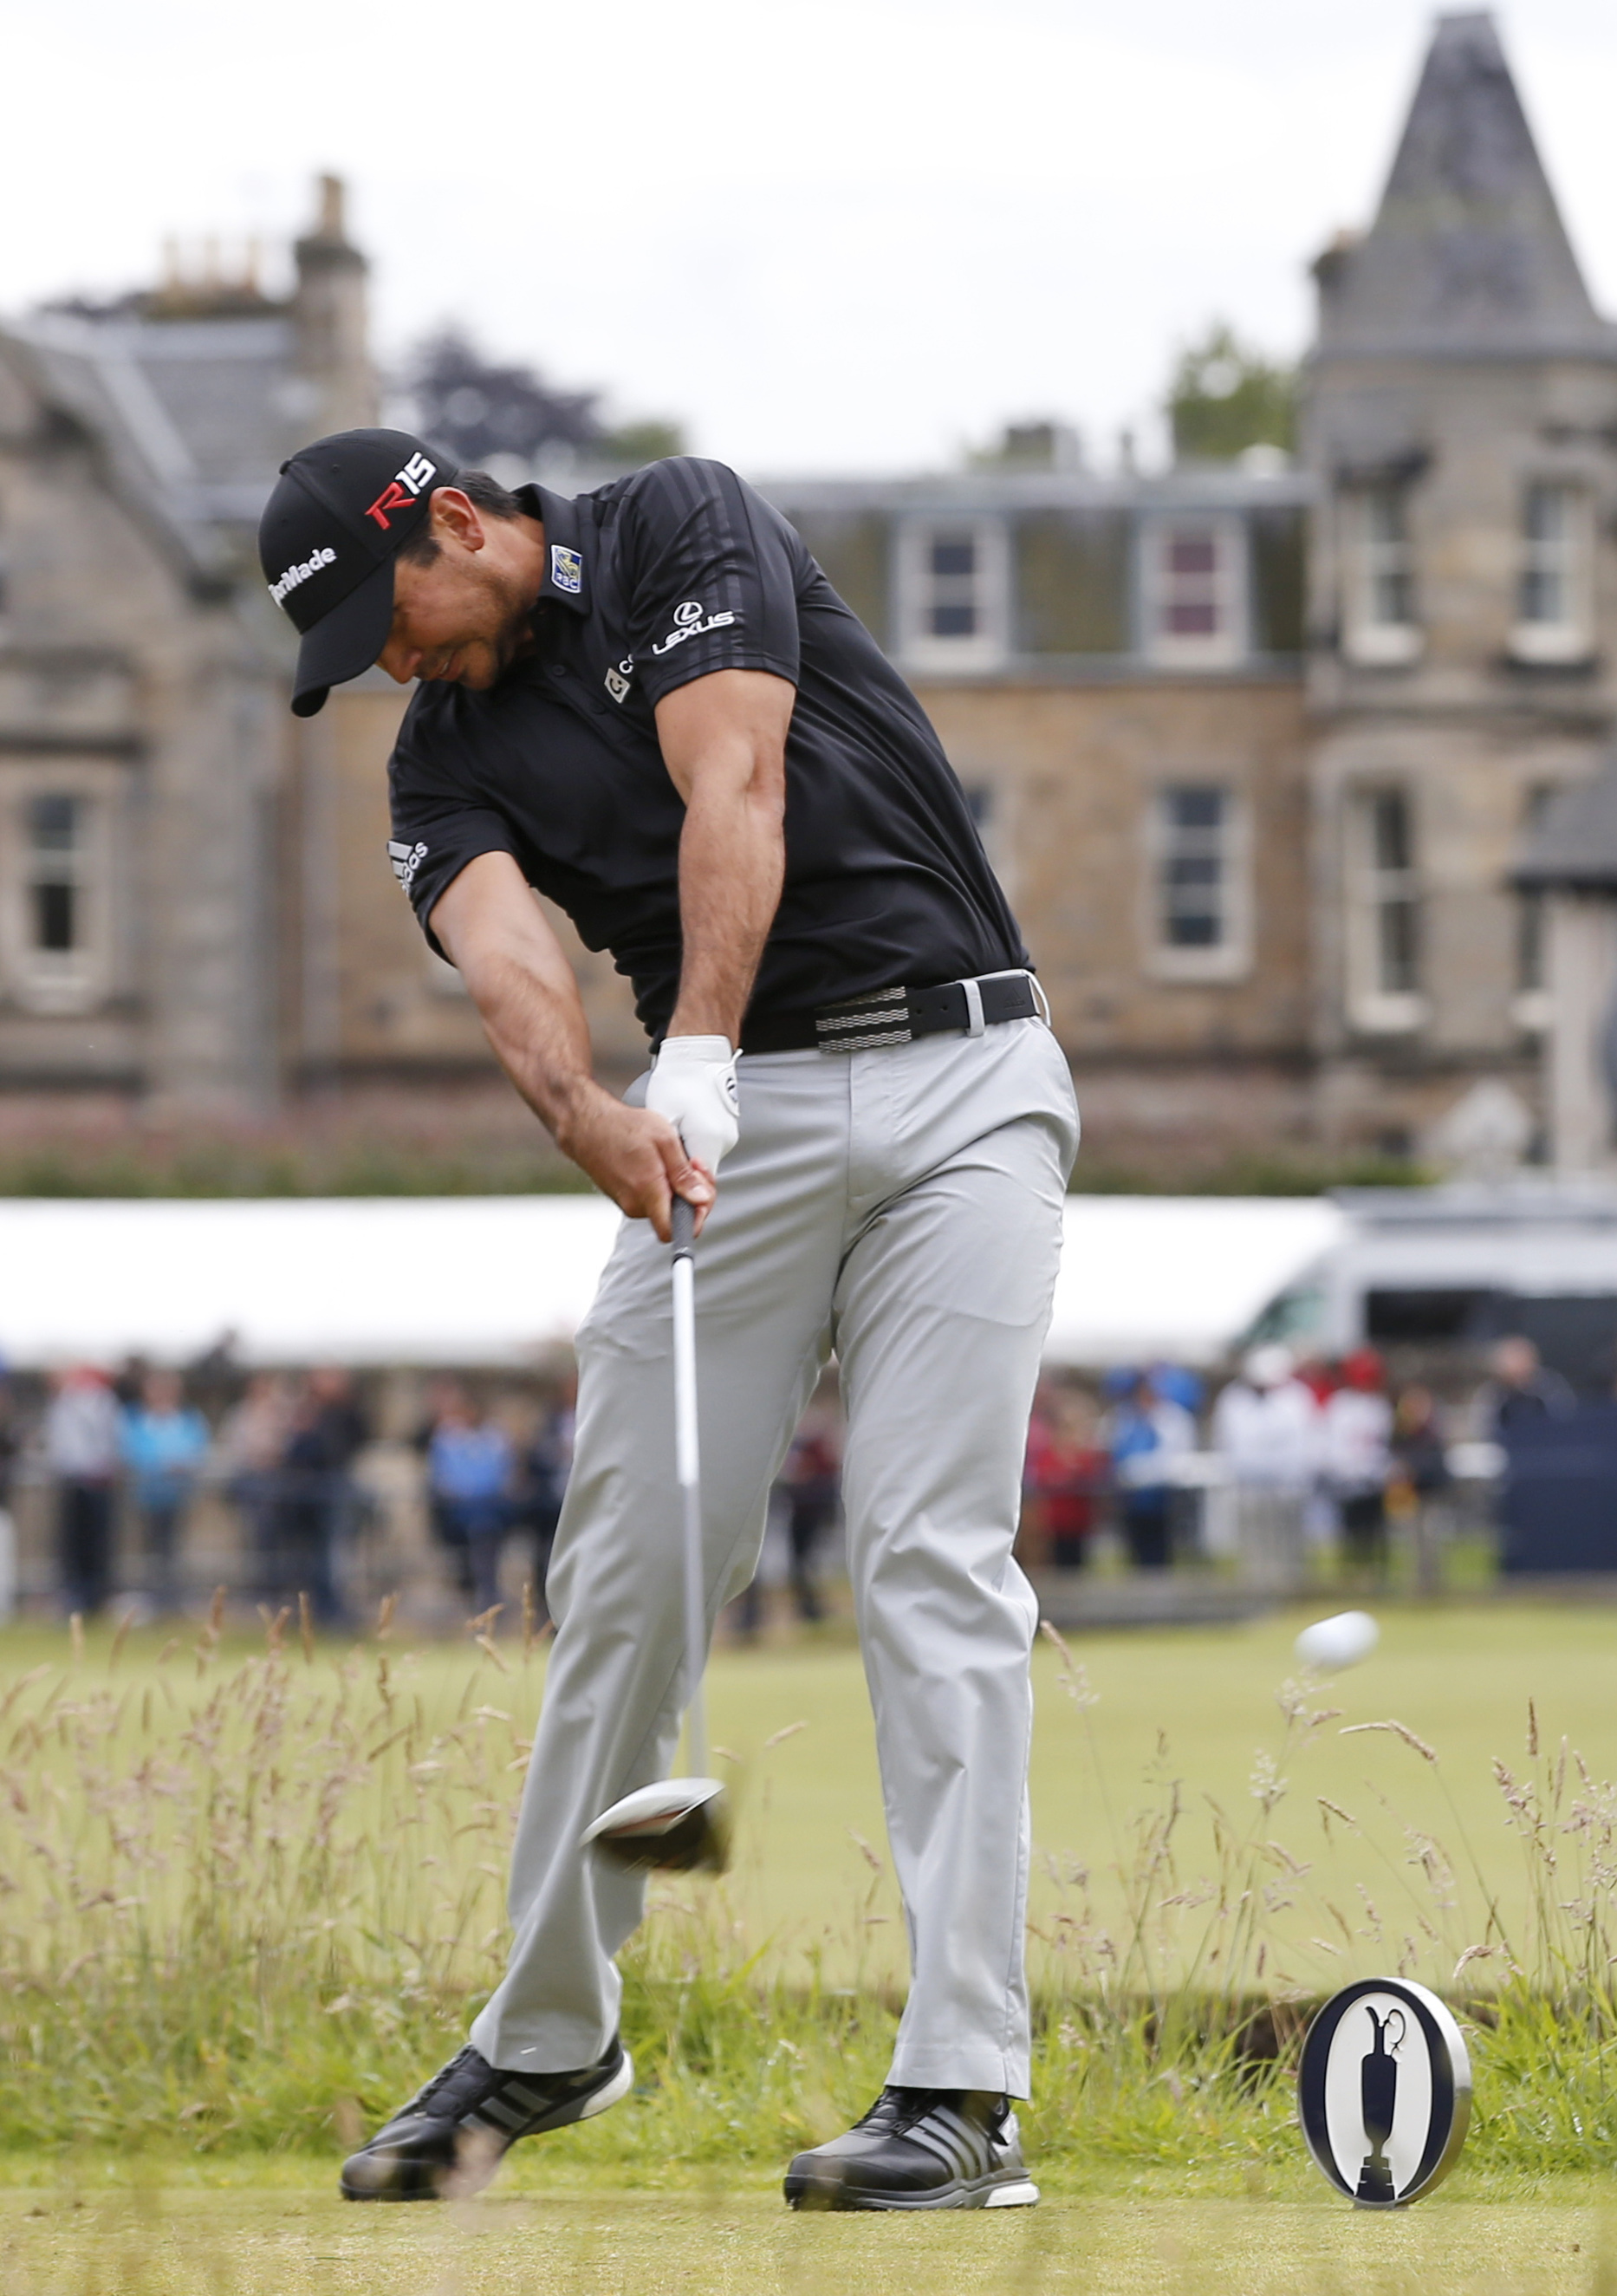 Australia's Jason Day plays from the second tee during the third round of the British Open Golf Championship at the Old Course, St. Andrews, Scotland, Sunday, July 19, 2015. (AP Photo/Alastair Grant)